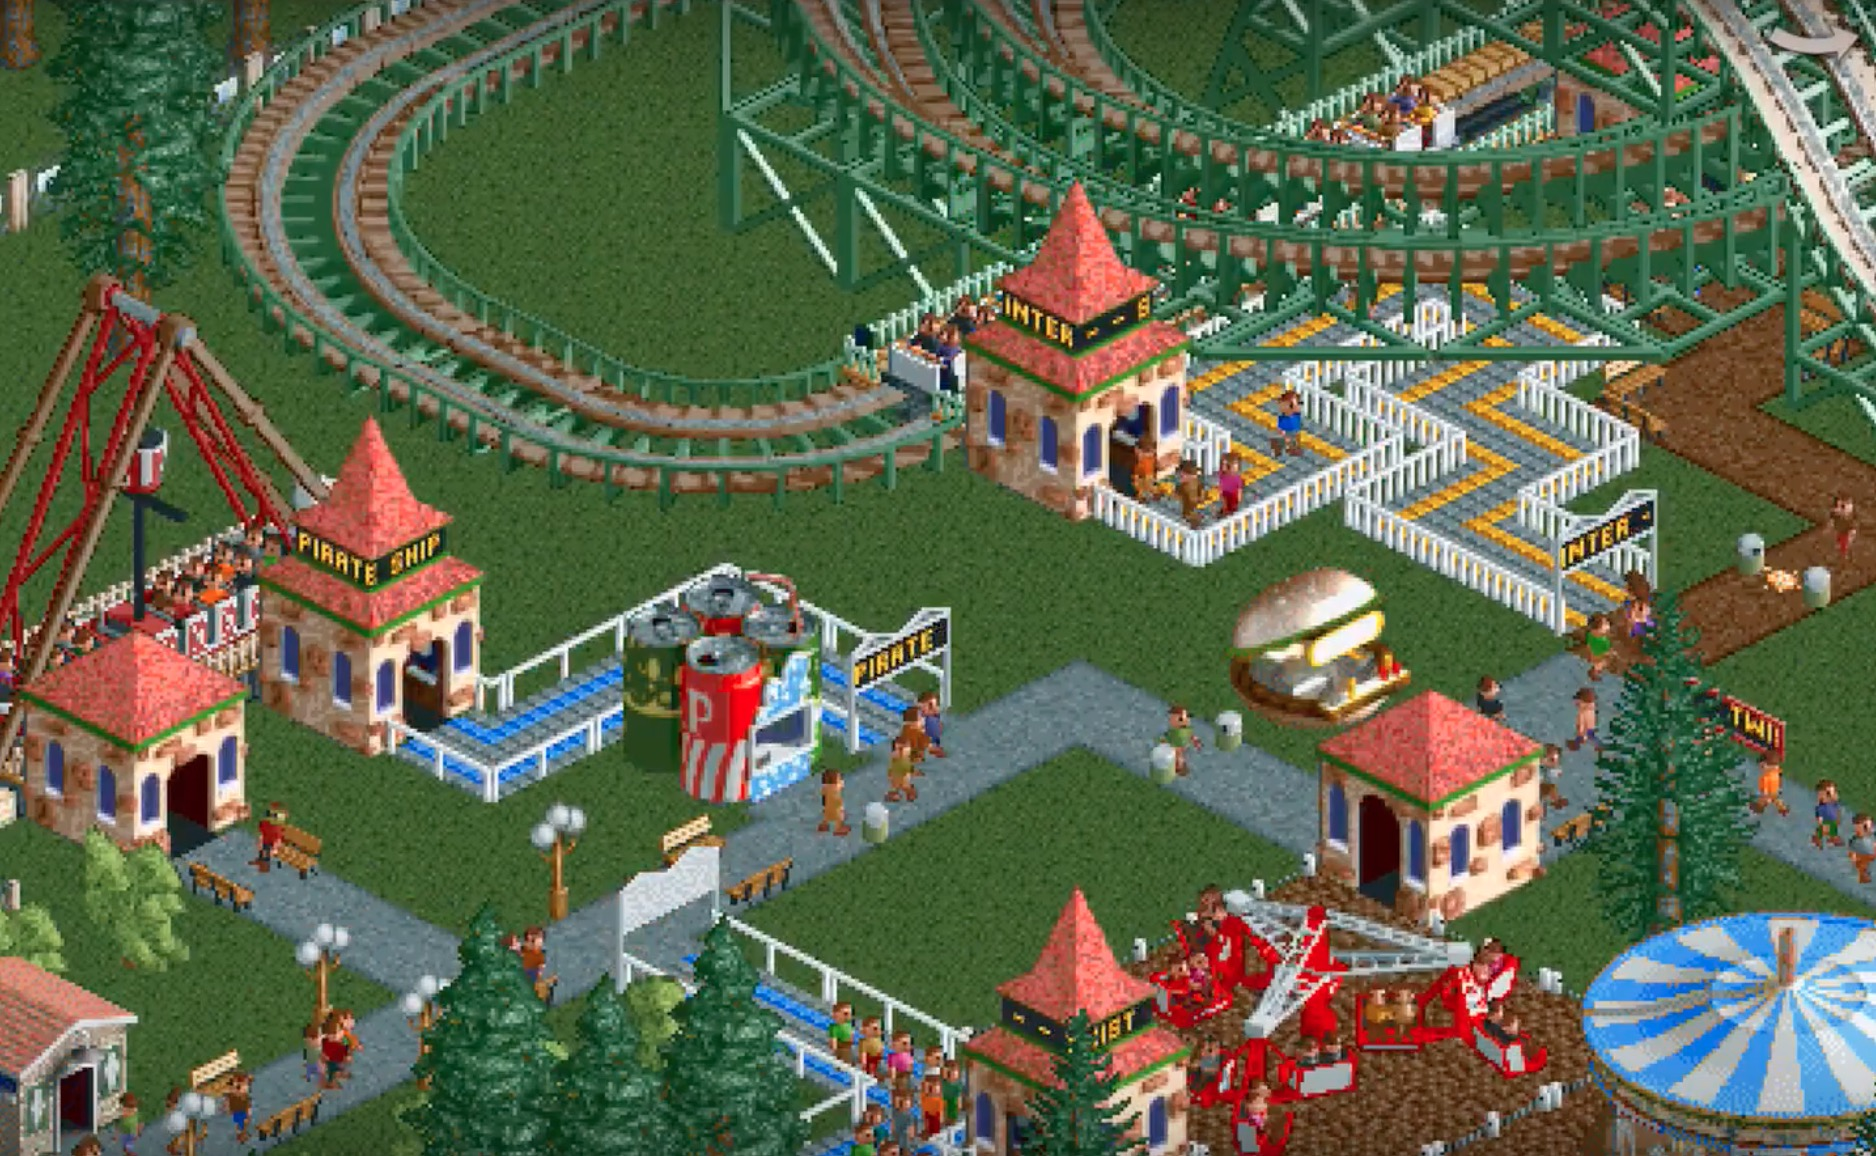 Atari Releases 'RollerCoaster Tycoon Classic' for iOS - MacRumors